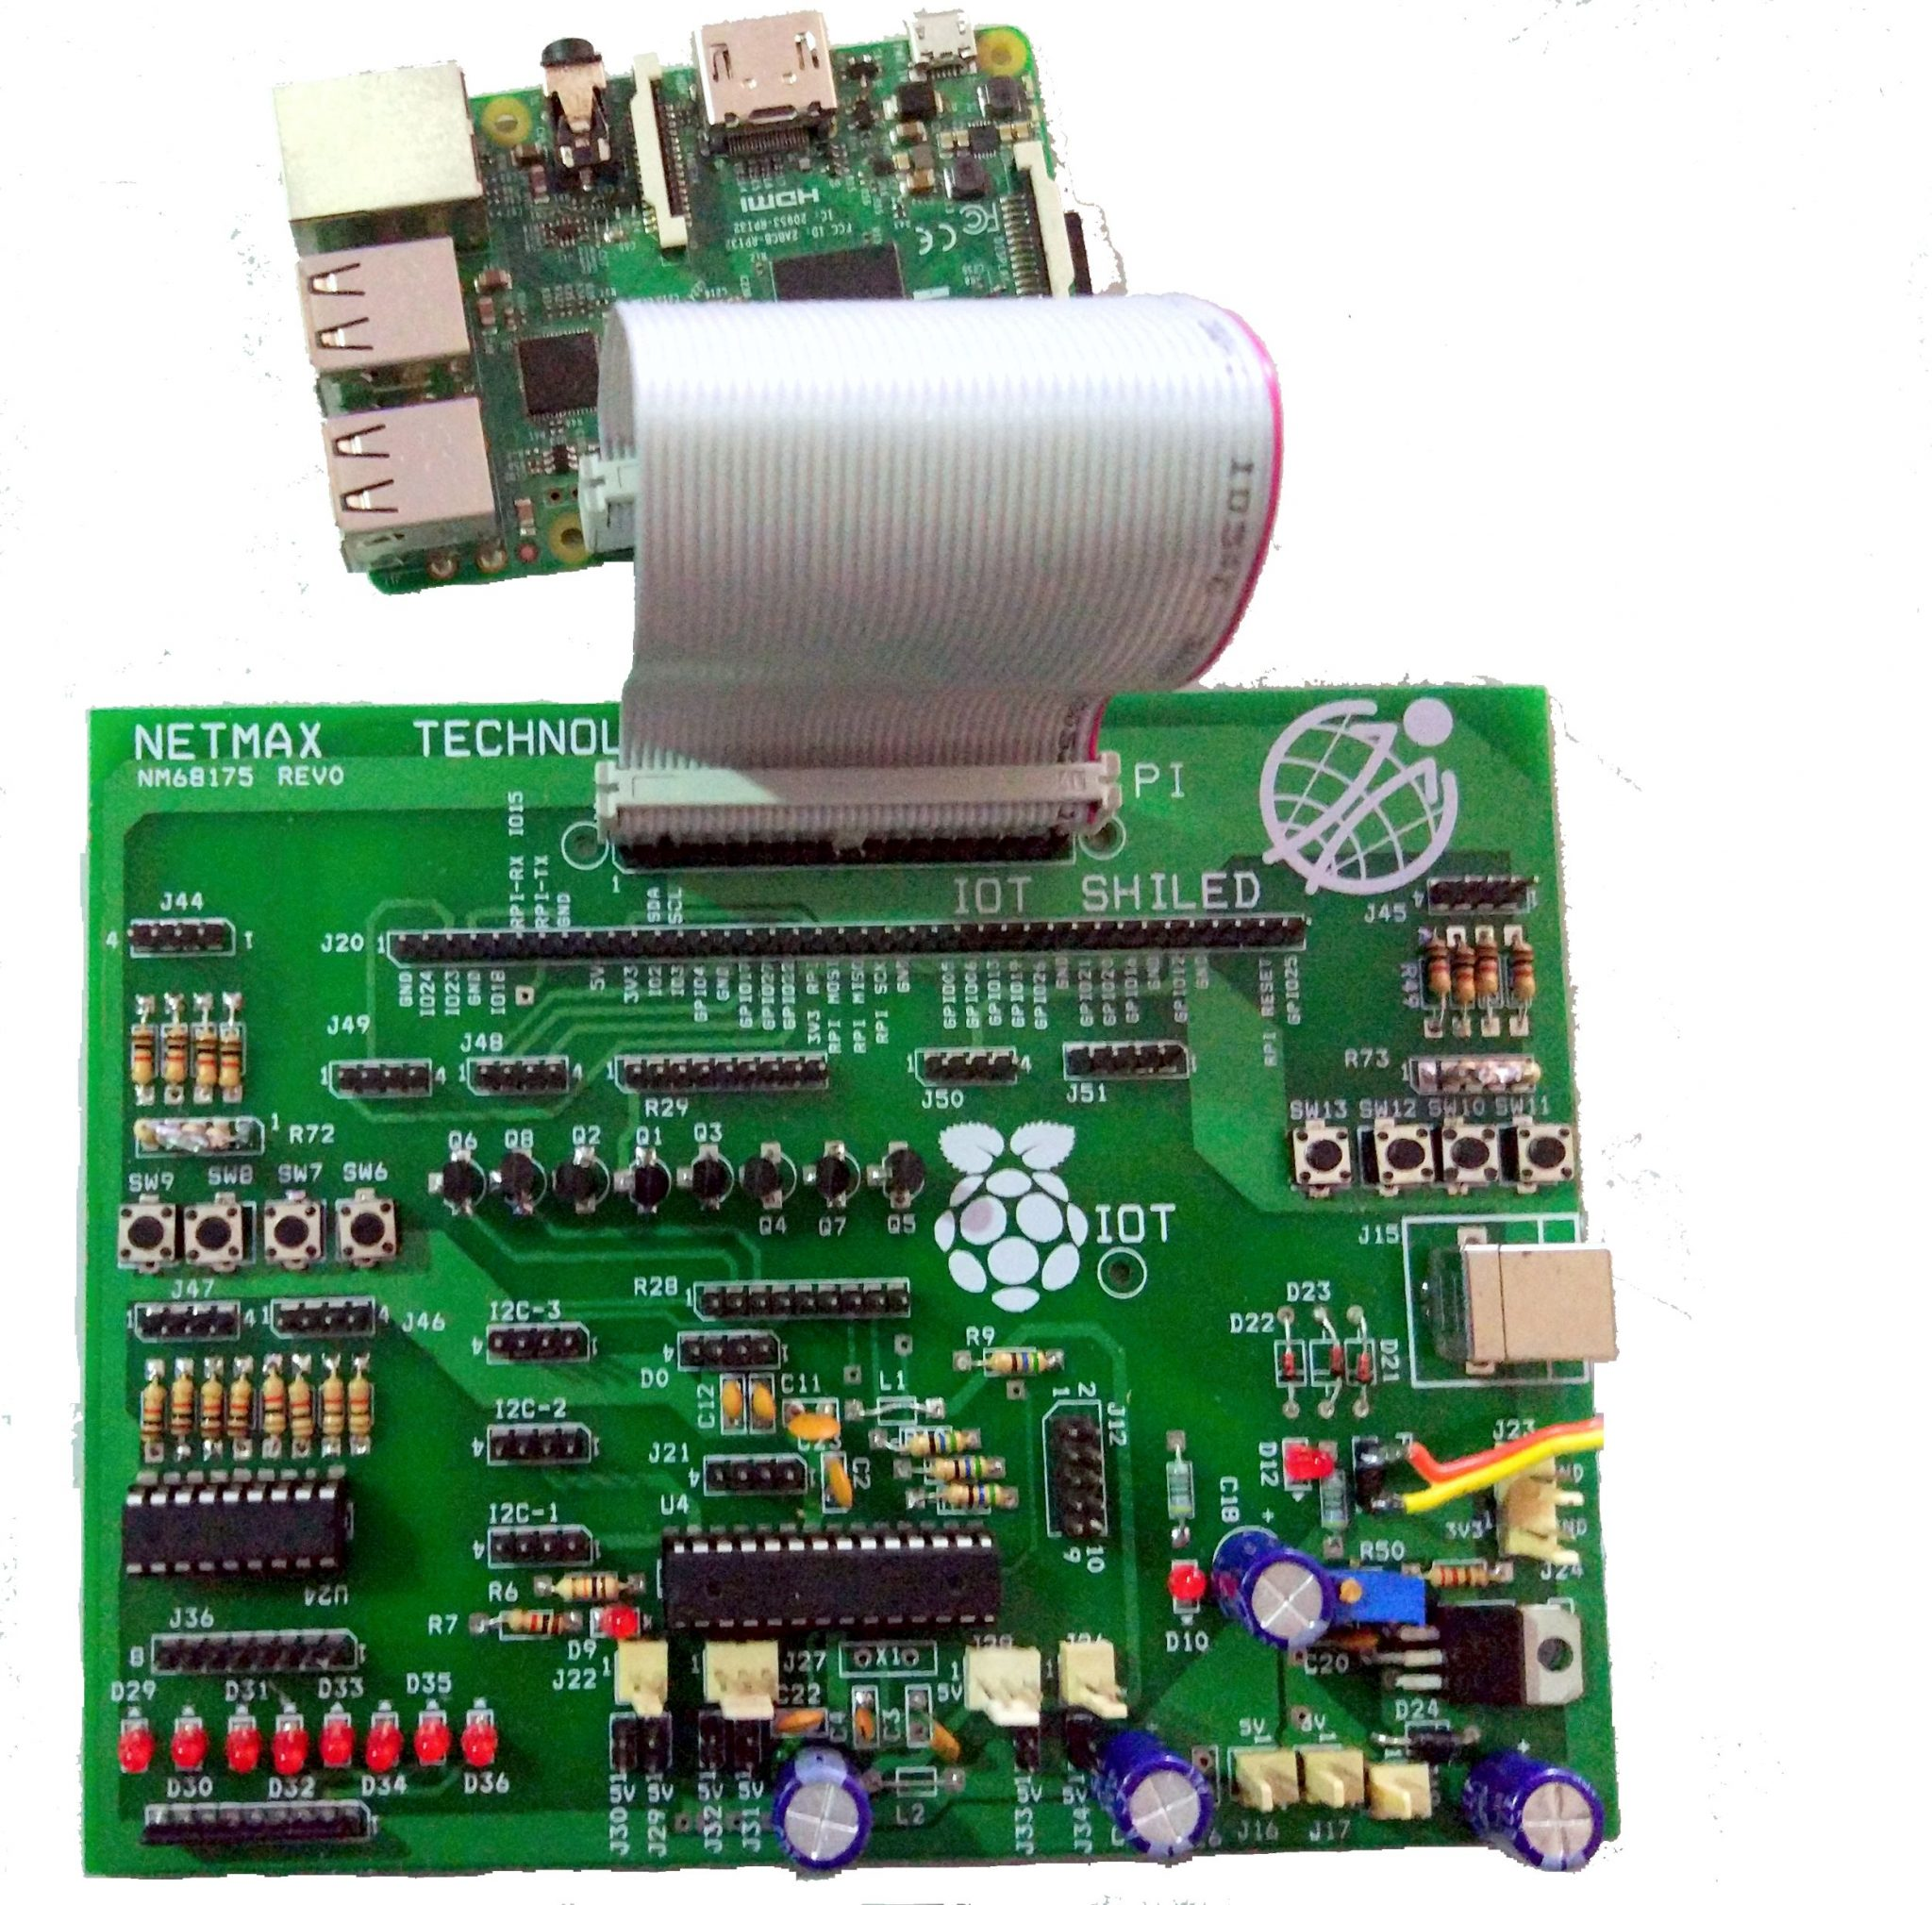 Netmax Iot Shield 2019 iot shield Netmax IOT Shield For Raspberry Pi with Netmaxiot Python Framework Netmax Iot Shield 2019